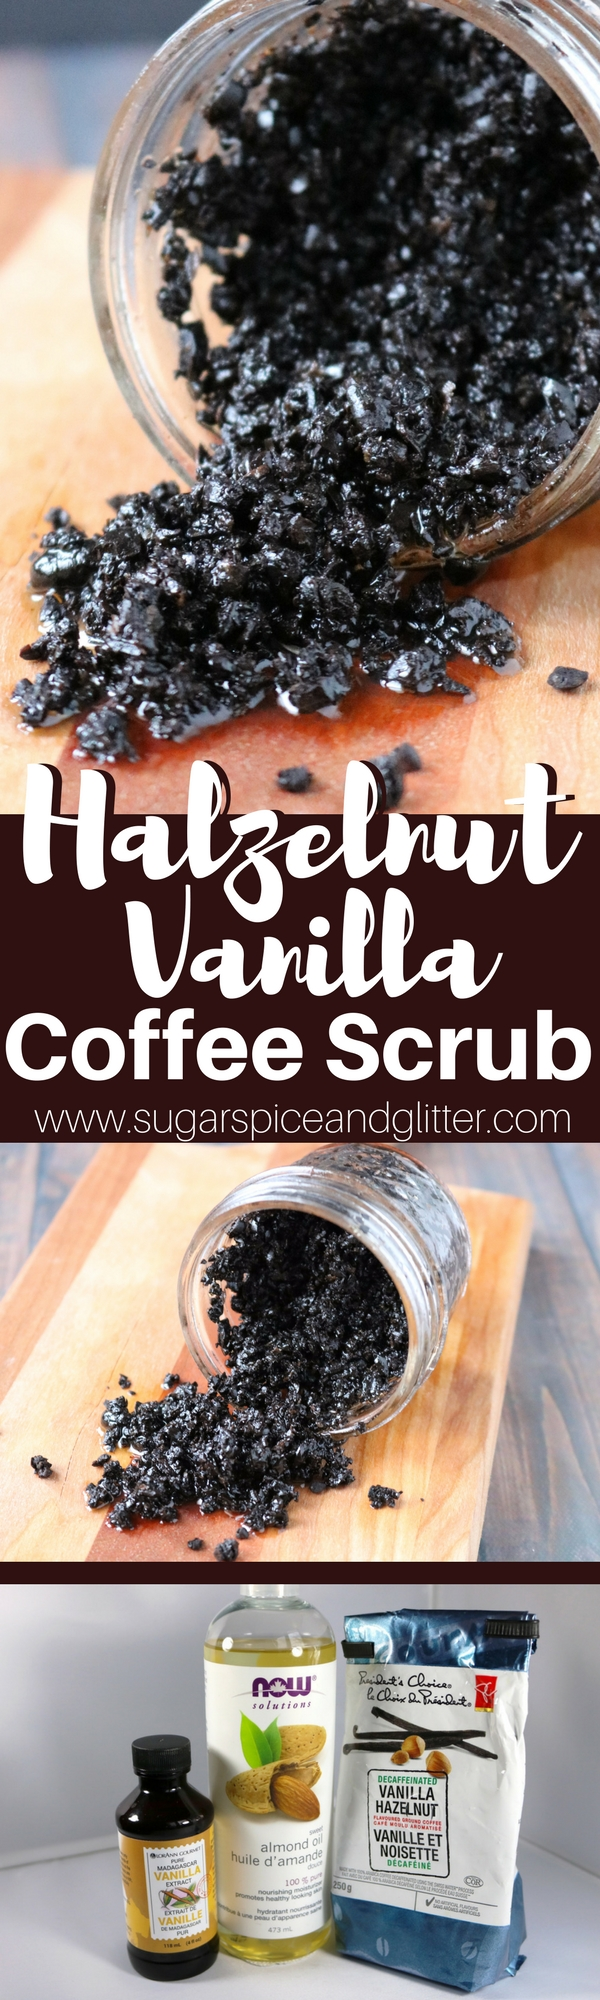 Coffee doesn't just belong in your cup in the morning! This DIY Hazelnut Vanilla Coffee Scrub is great for skin renewal - especially cellulite or stretch marks